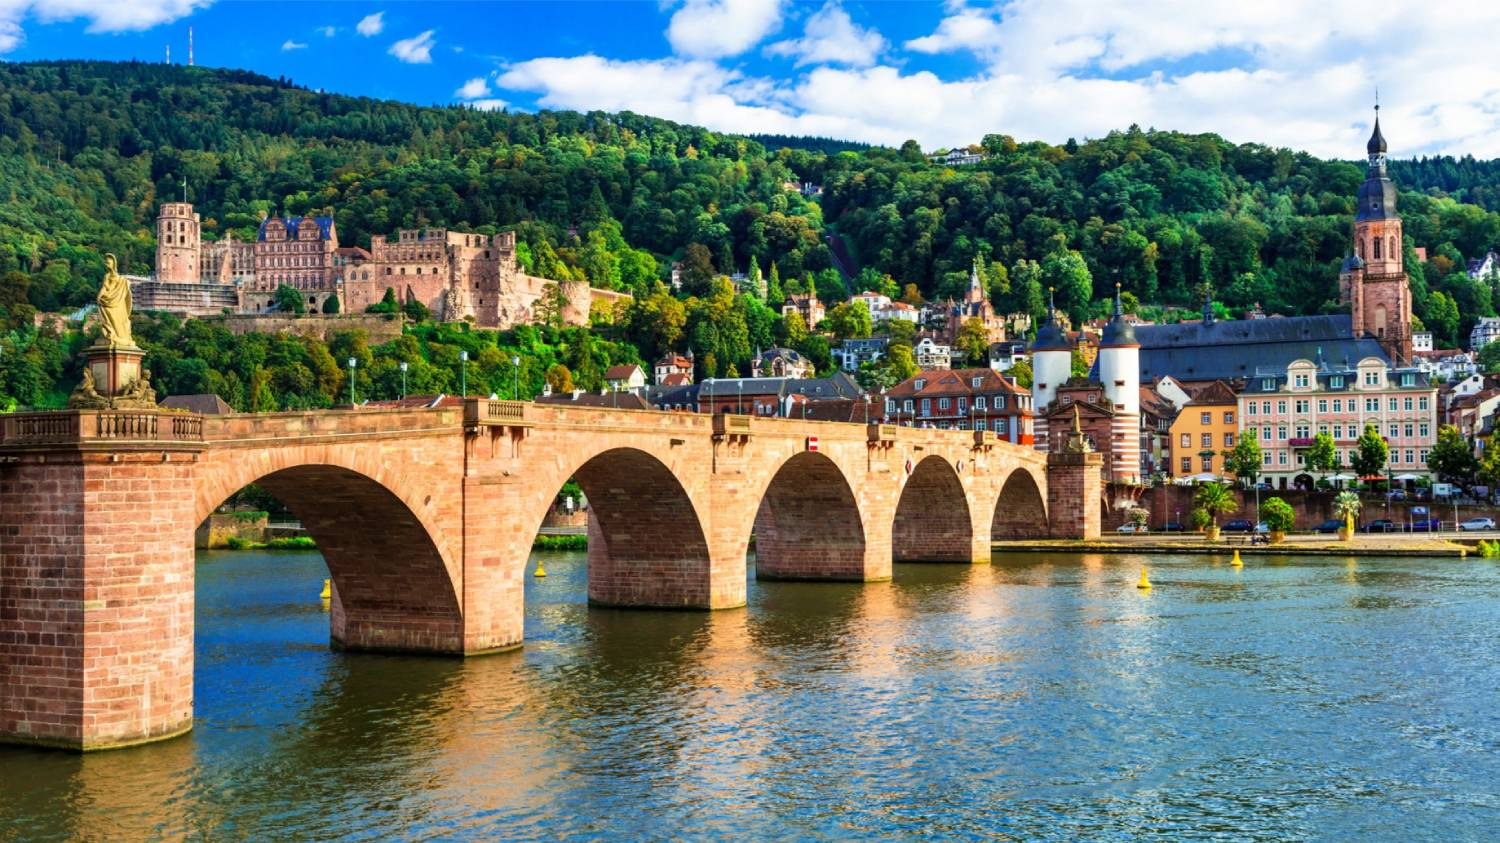 Heidelberg - The Best Places To Visit In Germany